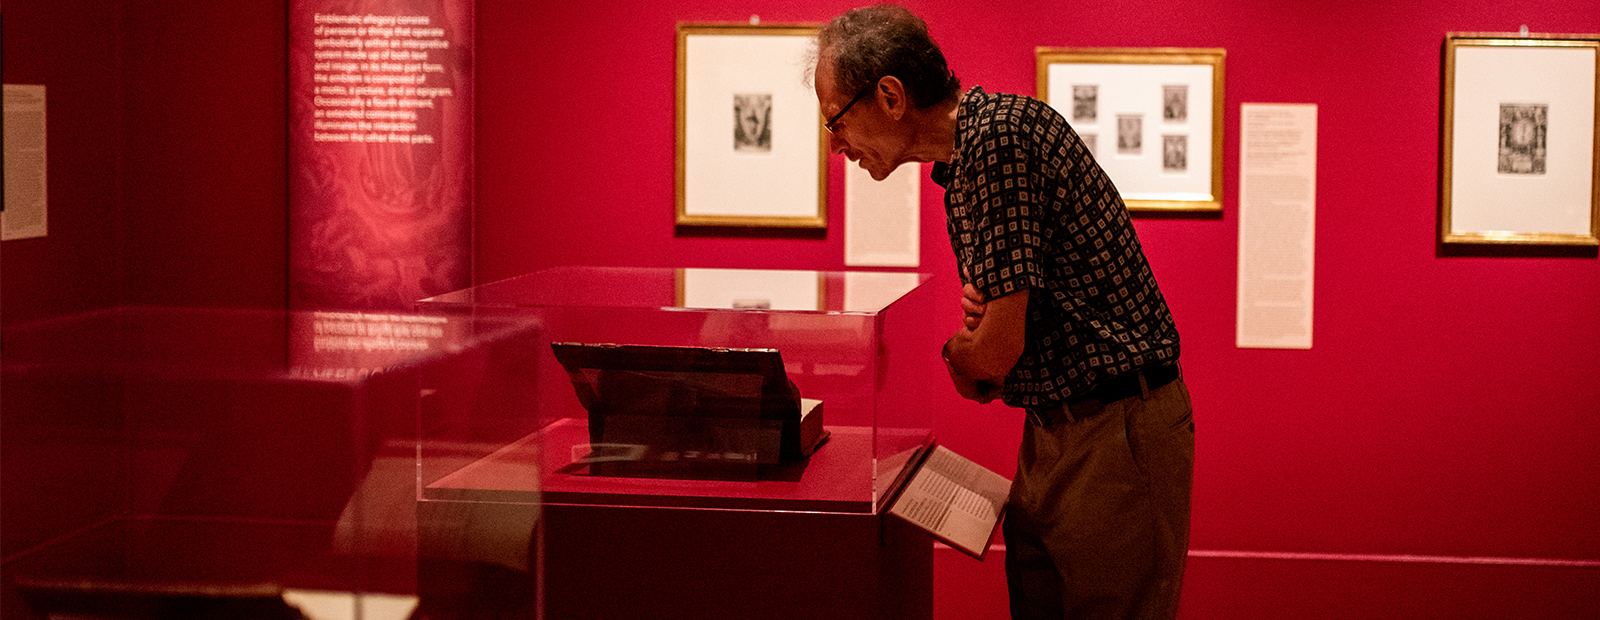 Man looks at a book in exhibition